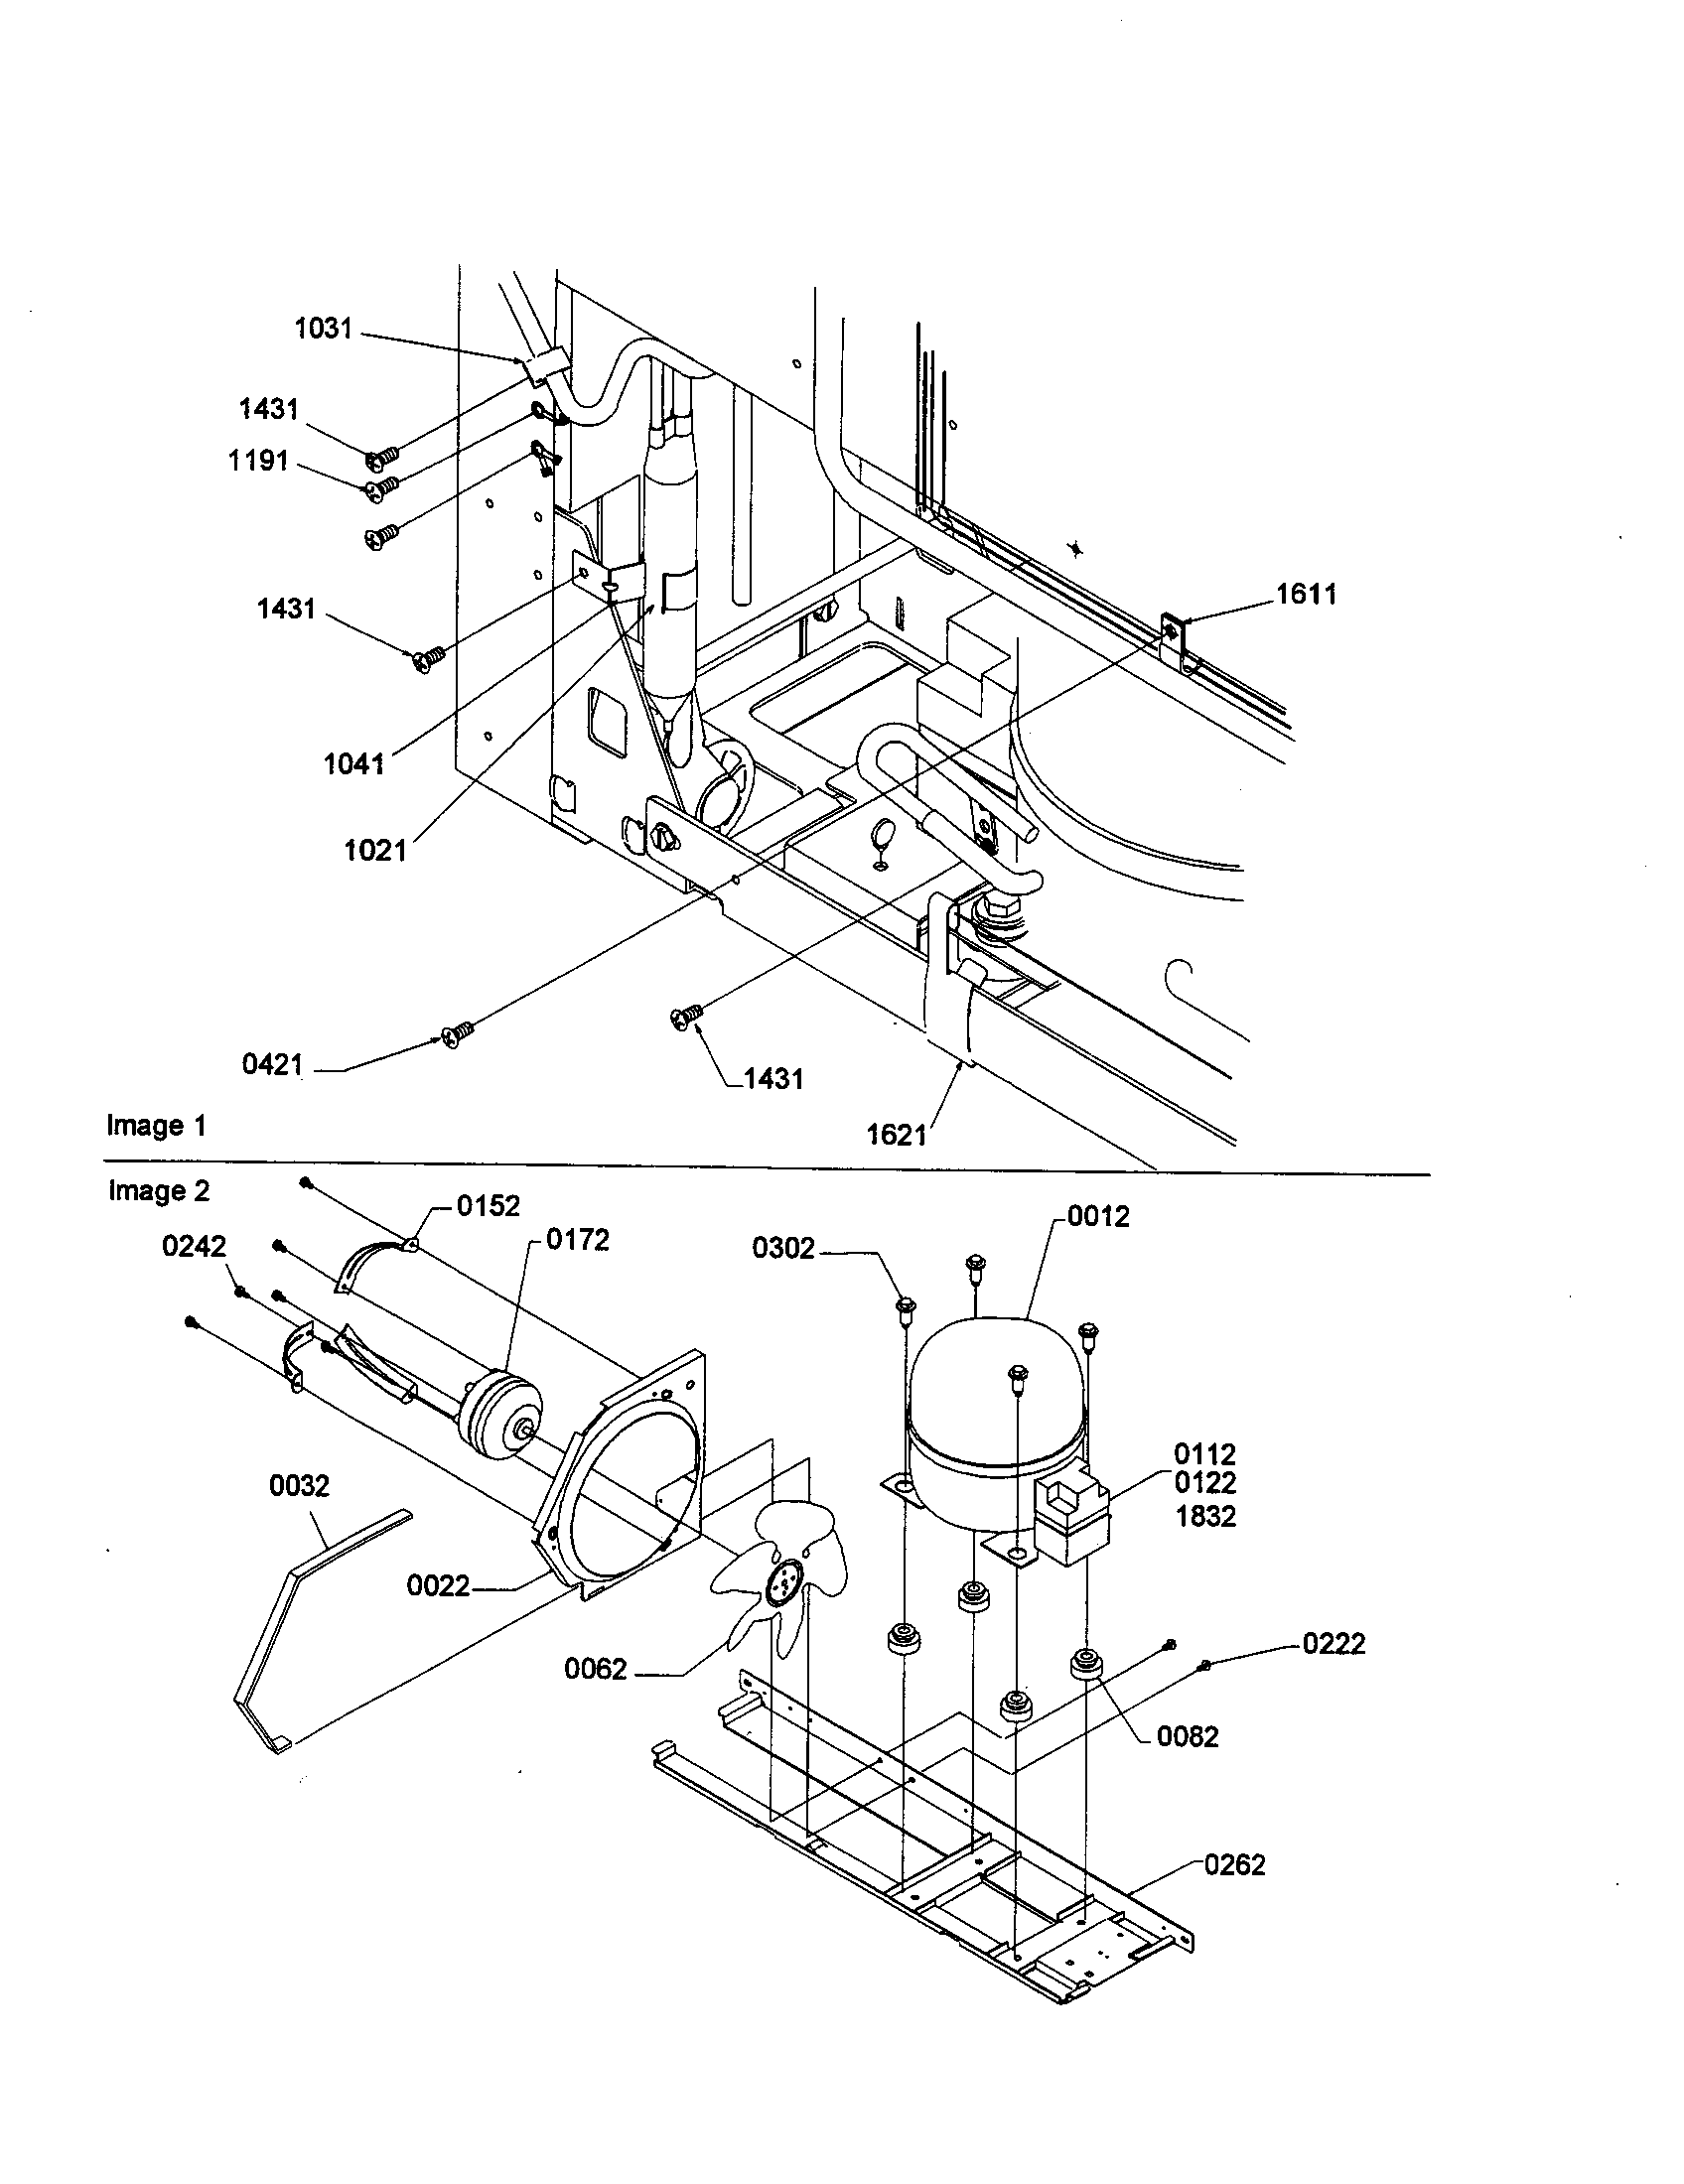 MACHINE COMPARTMENT ASSEMBLY Diagram & Parts List for